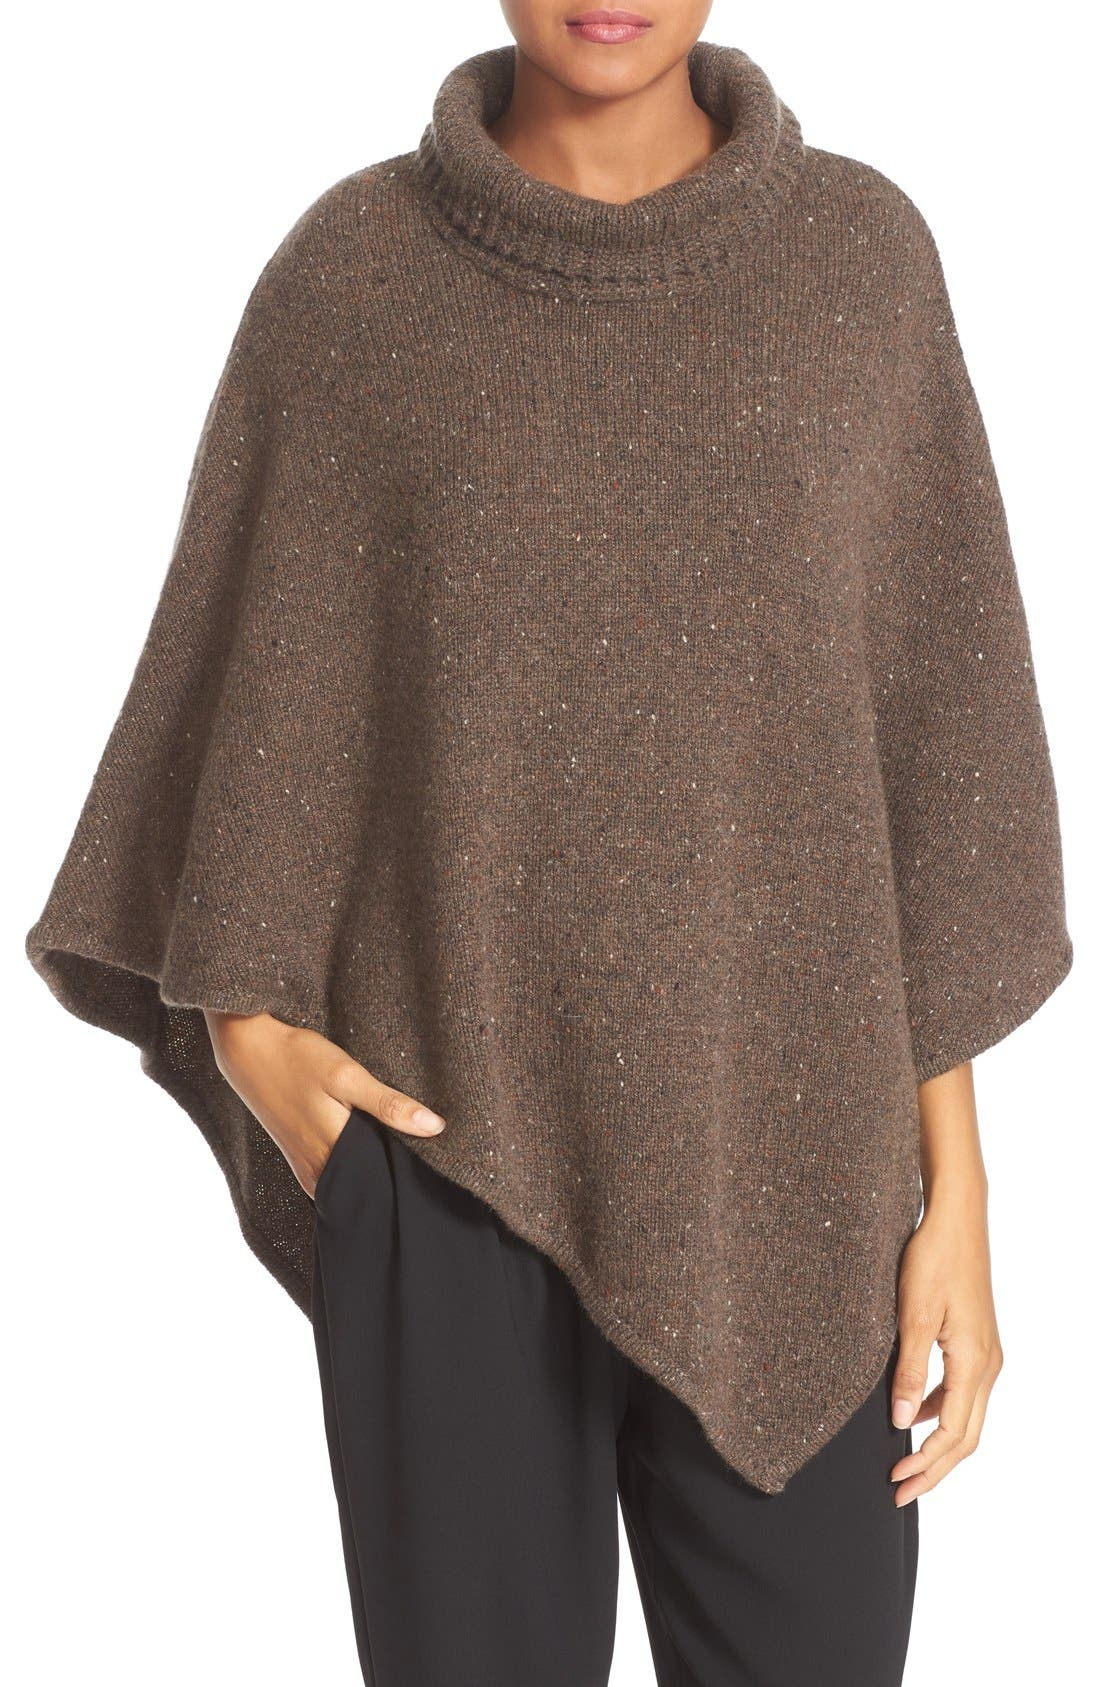 Alternate Image 1 Selected - Joie 'Haesel C' Tweed Cashmere Turtleneck Poncho